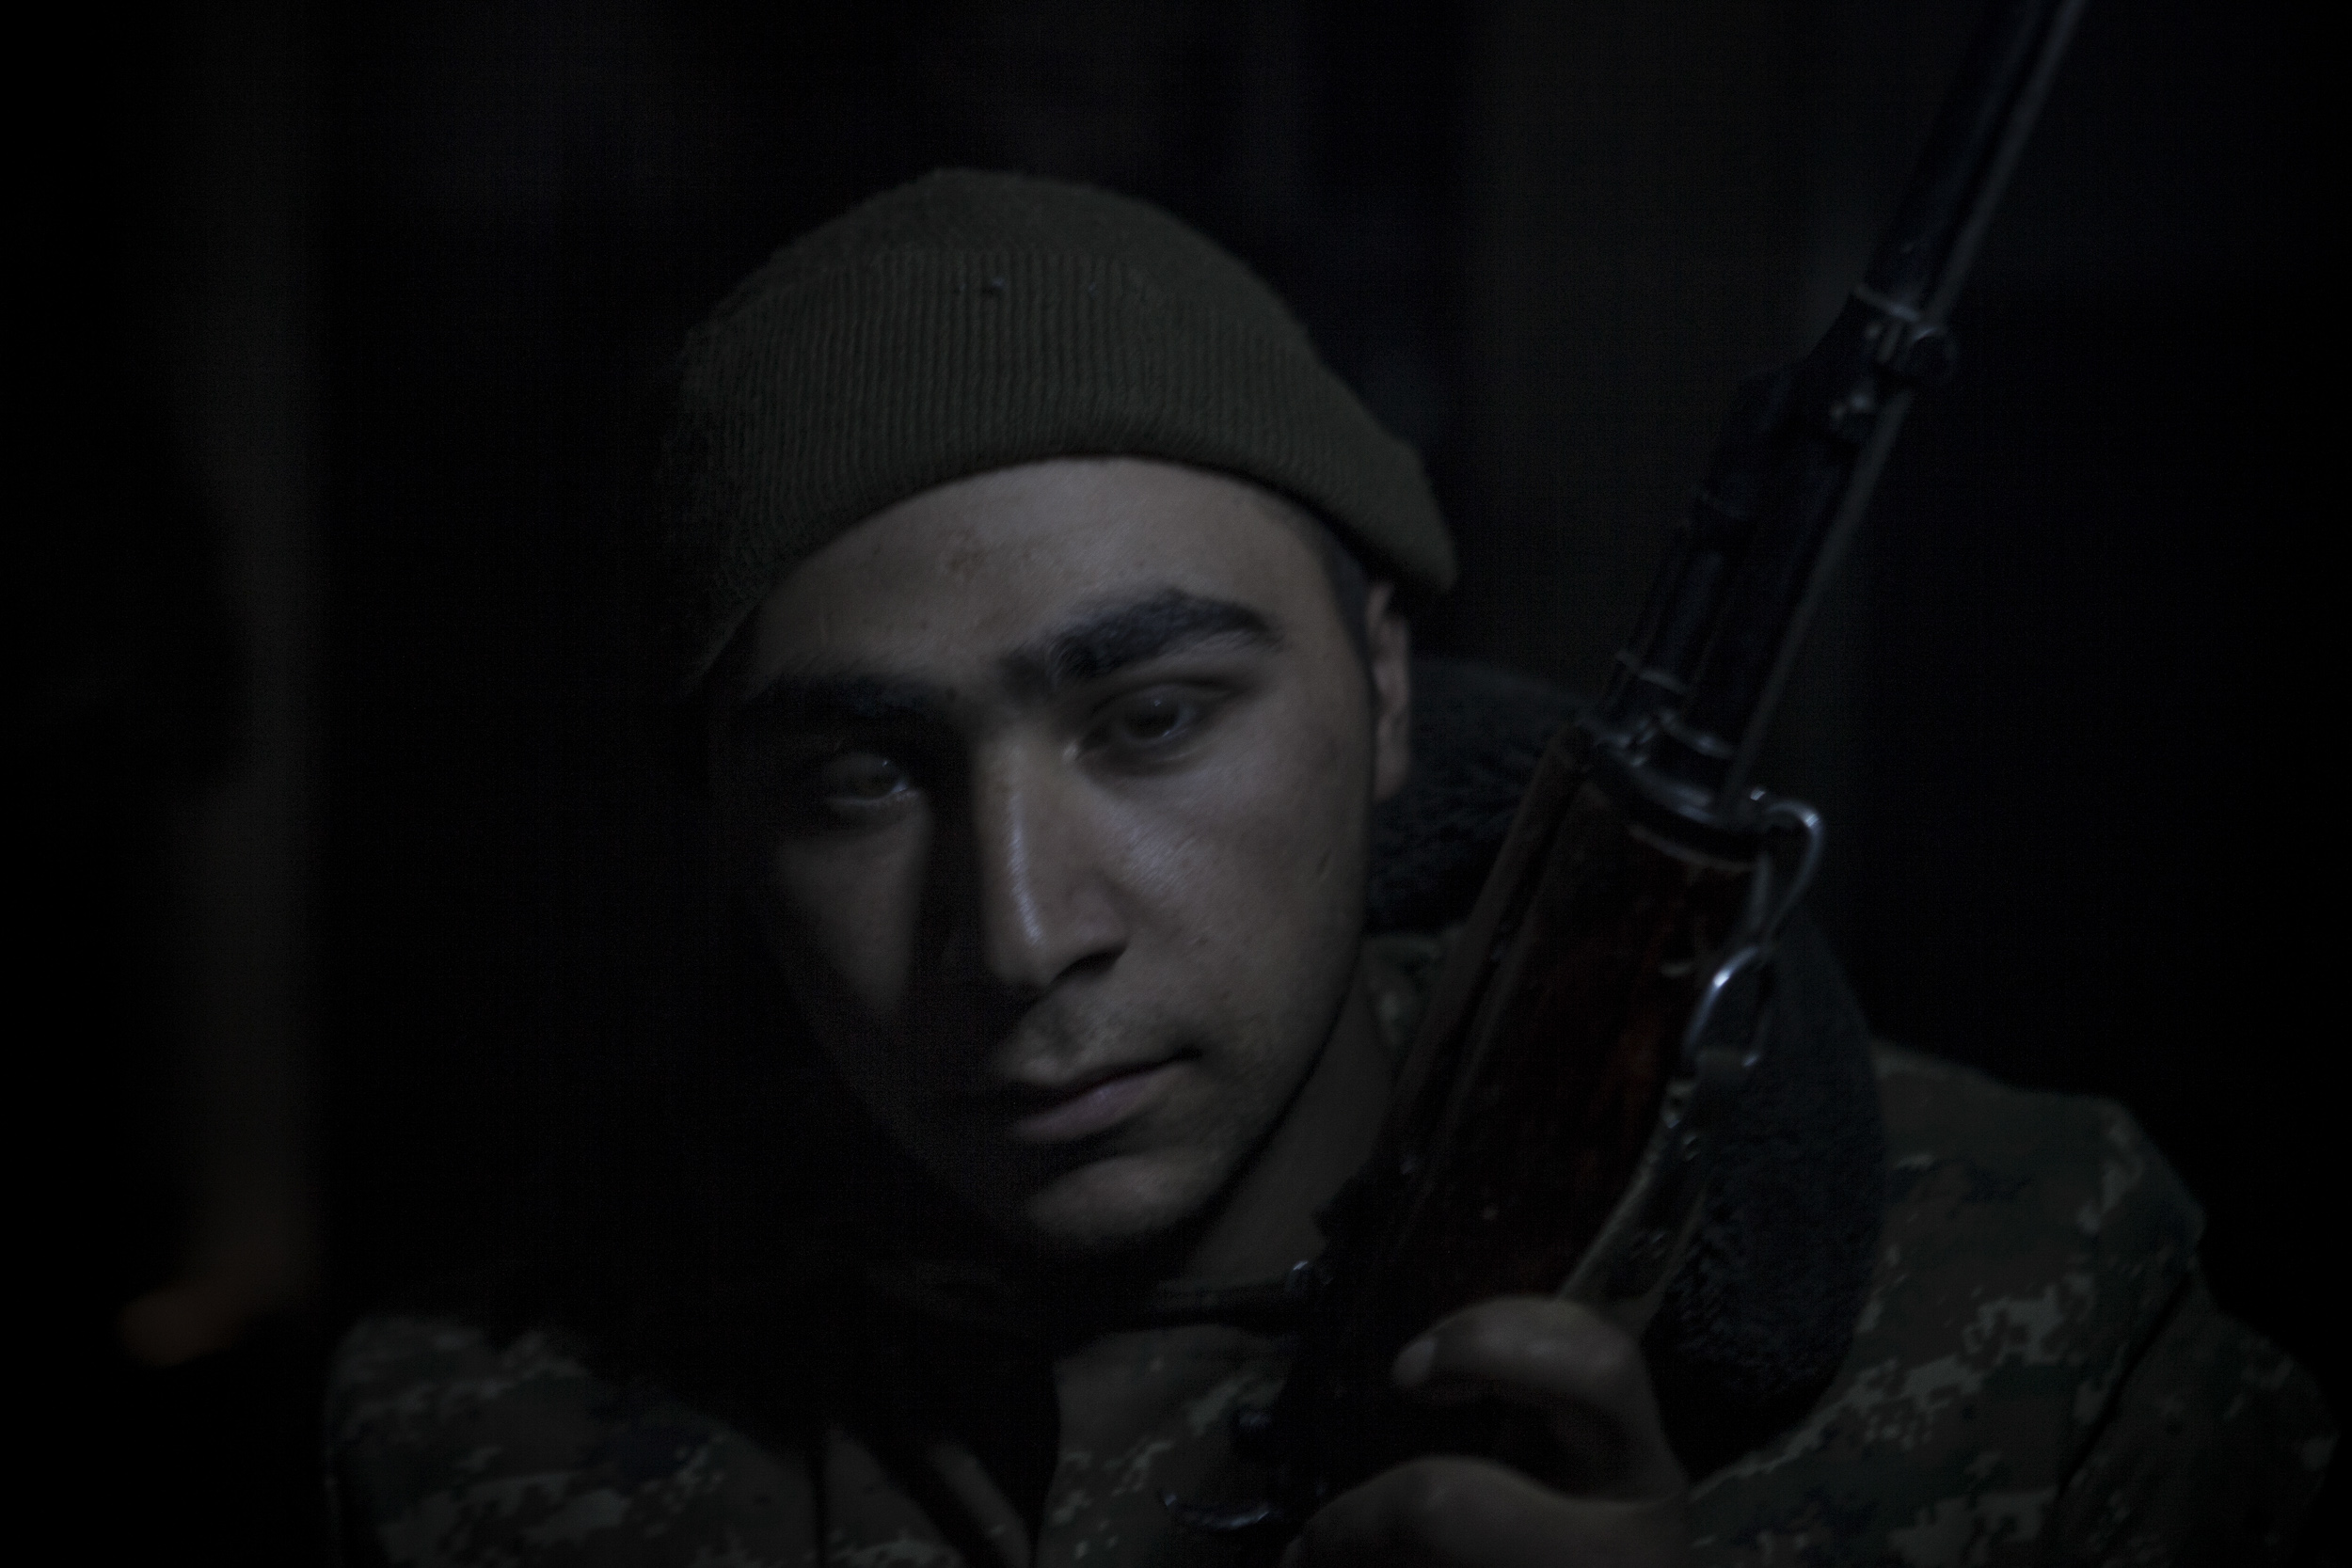 Soldiers awaiting orders in darkness, lit only by kerosene lanterns, at a military base in Mataghis, Karabakh on April 5.